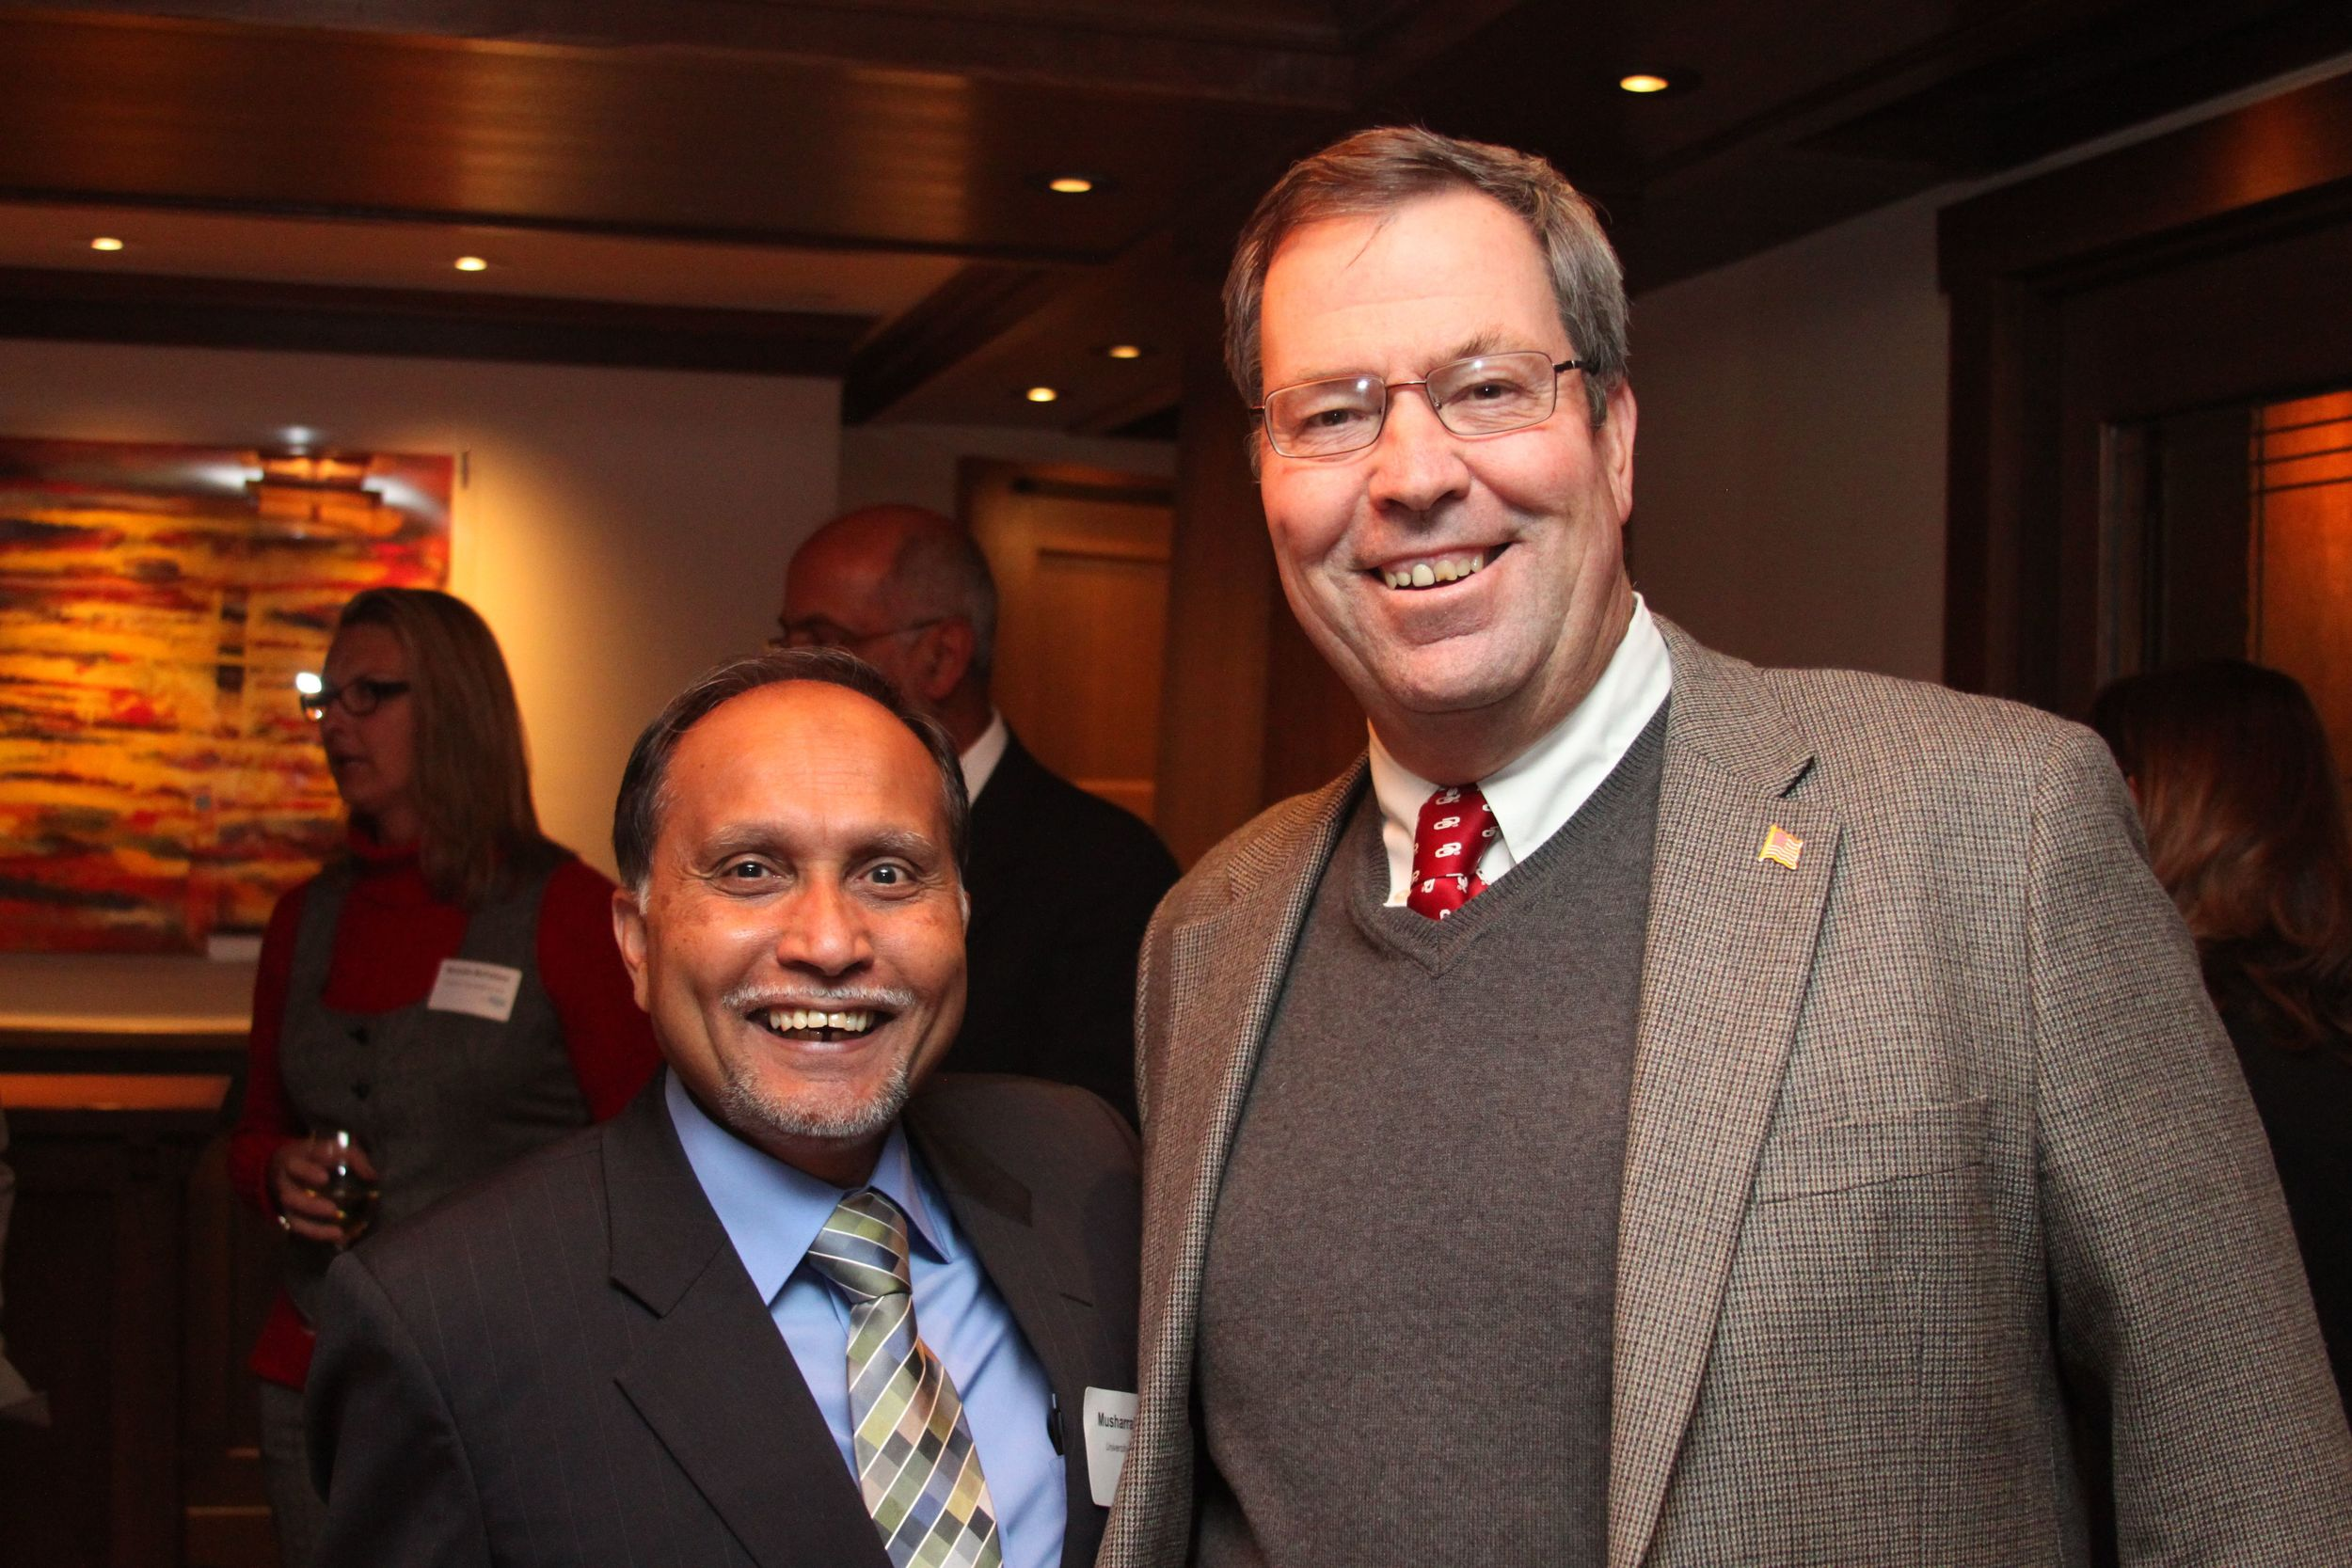 Dr. Zaman welcomes David Streb, Director of Engineering for the Okla. Dept. of Transportation.